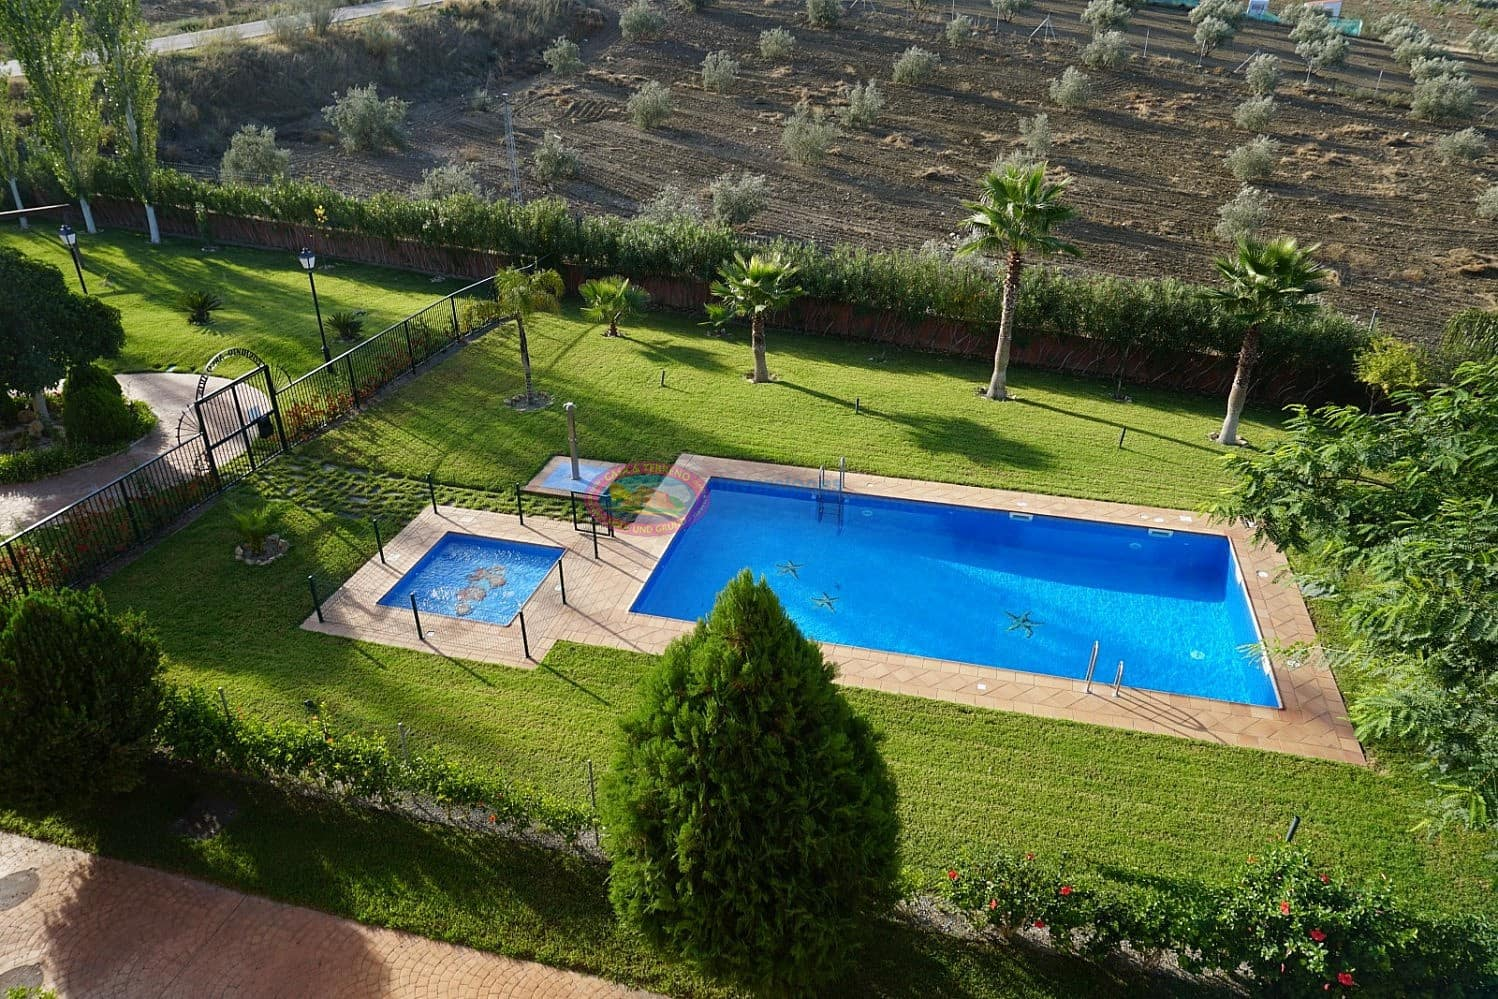 1 bedroom Apartment for sale in Alcaucin with pool - € 110,000 (Ref: 4823553)